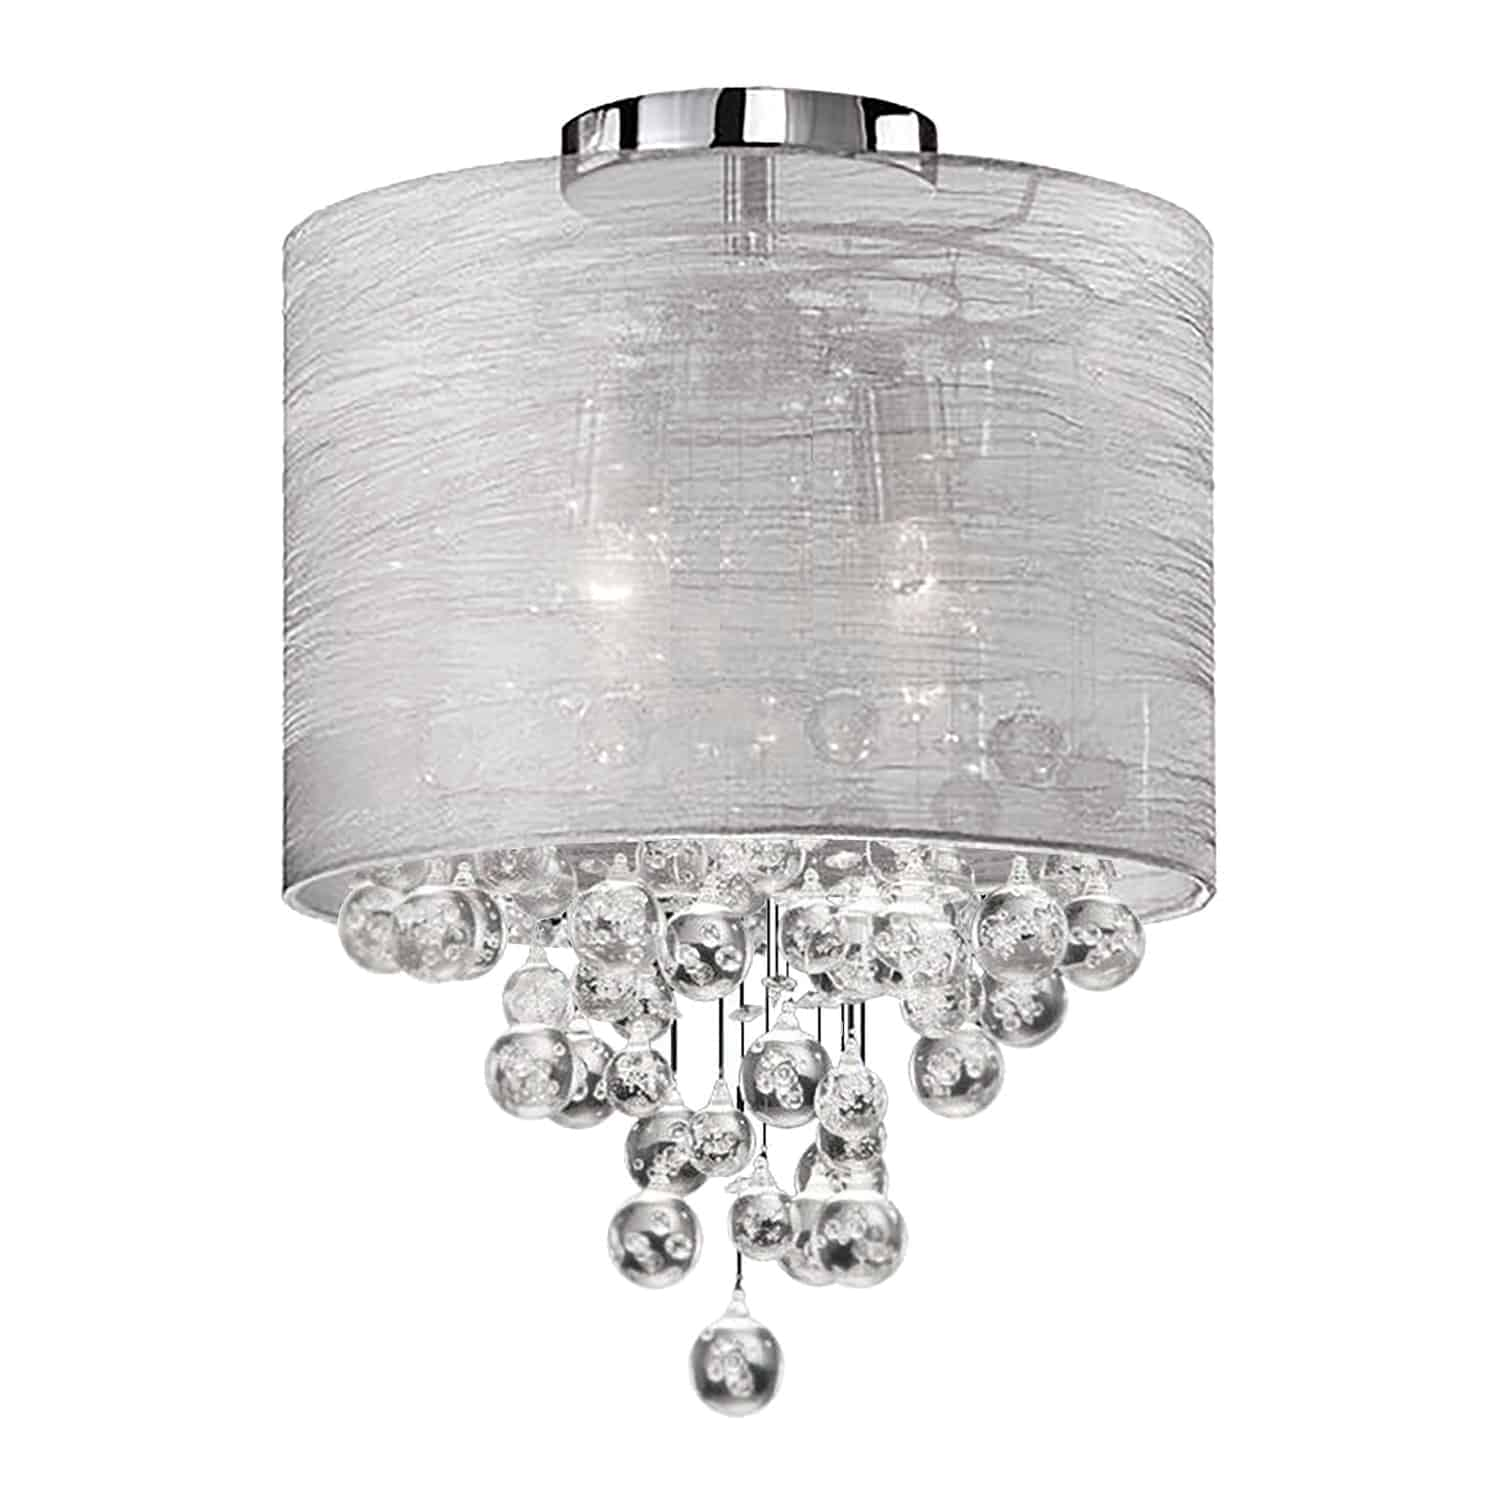 2 Light Incandescent Crystal Flush Mount Polished Chrome Finish with Silver Organza Shade